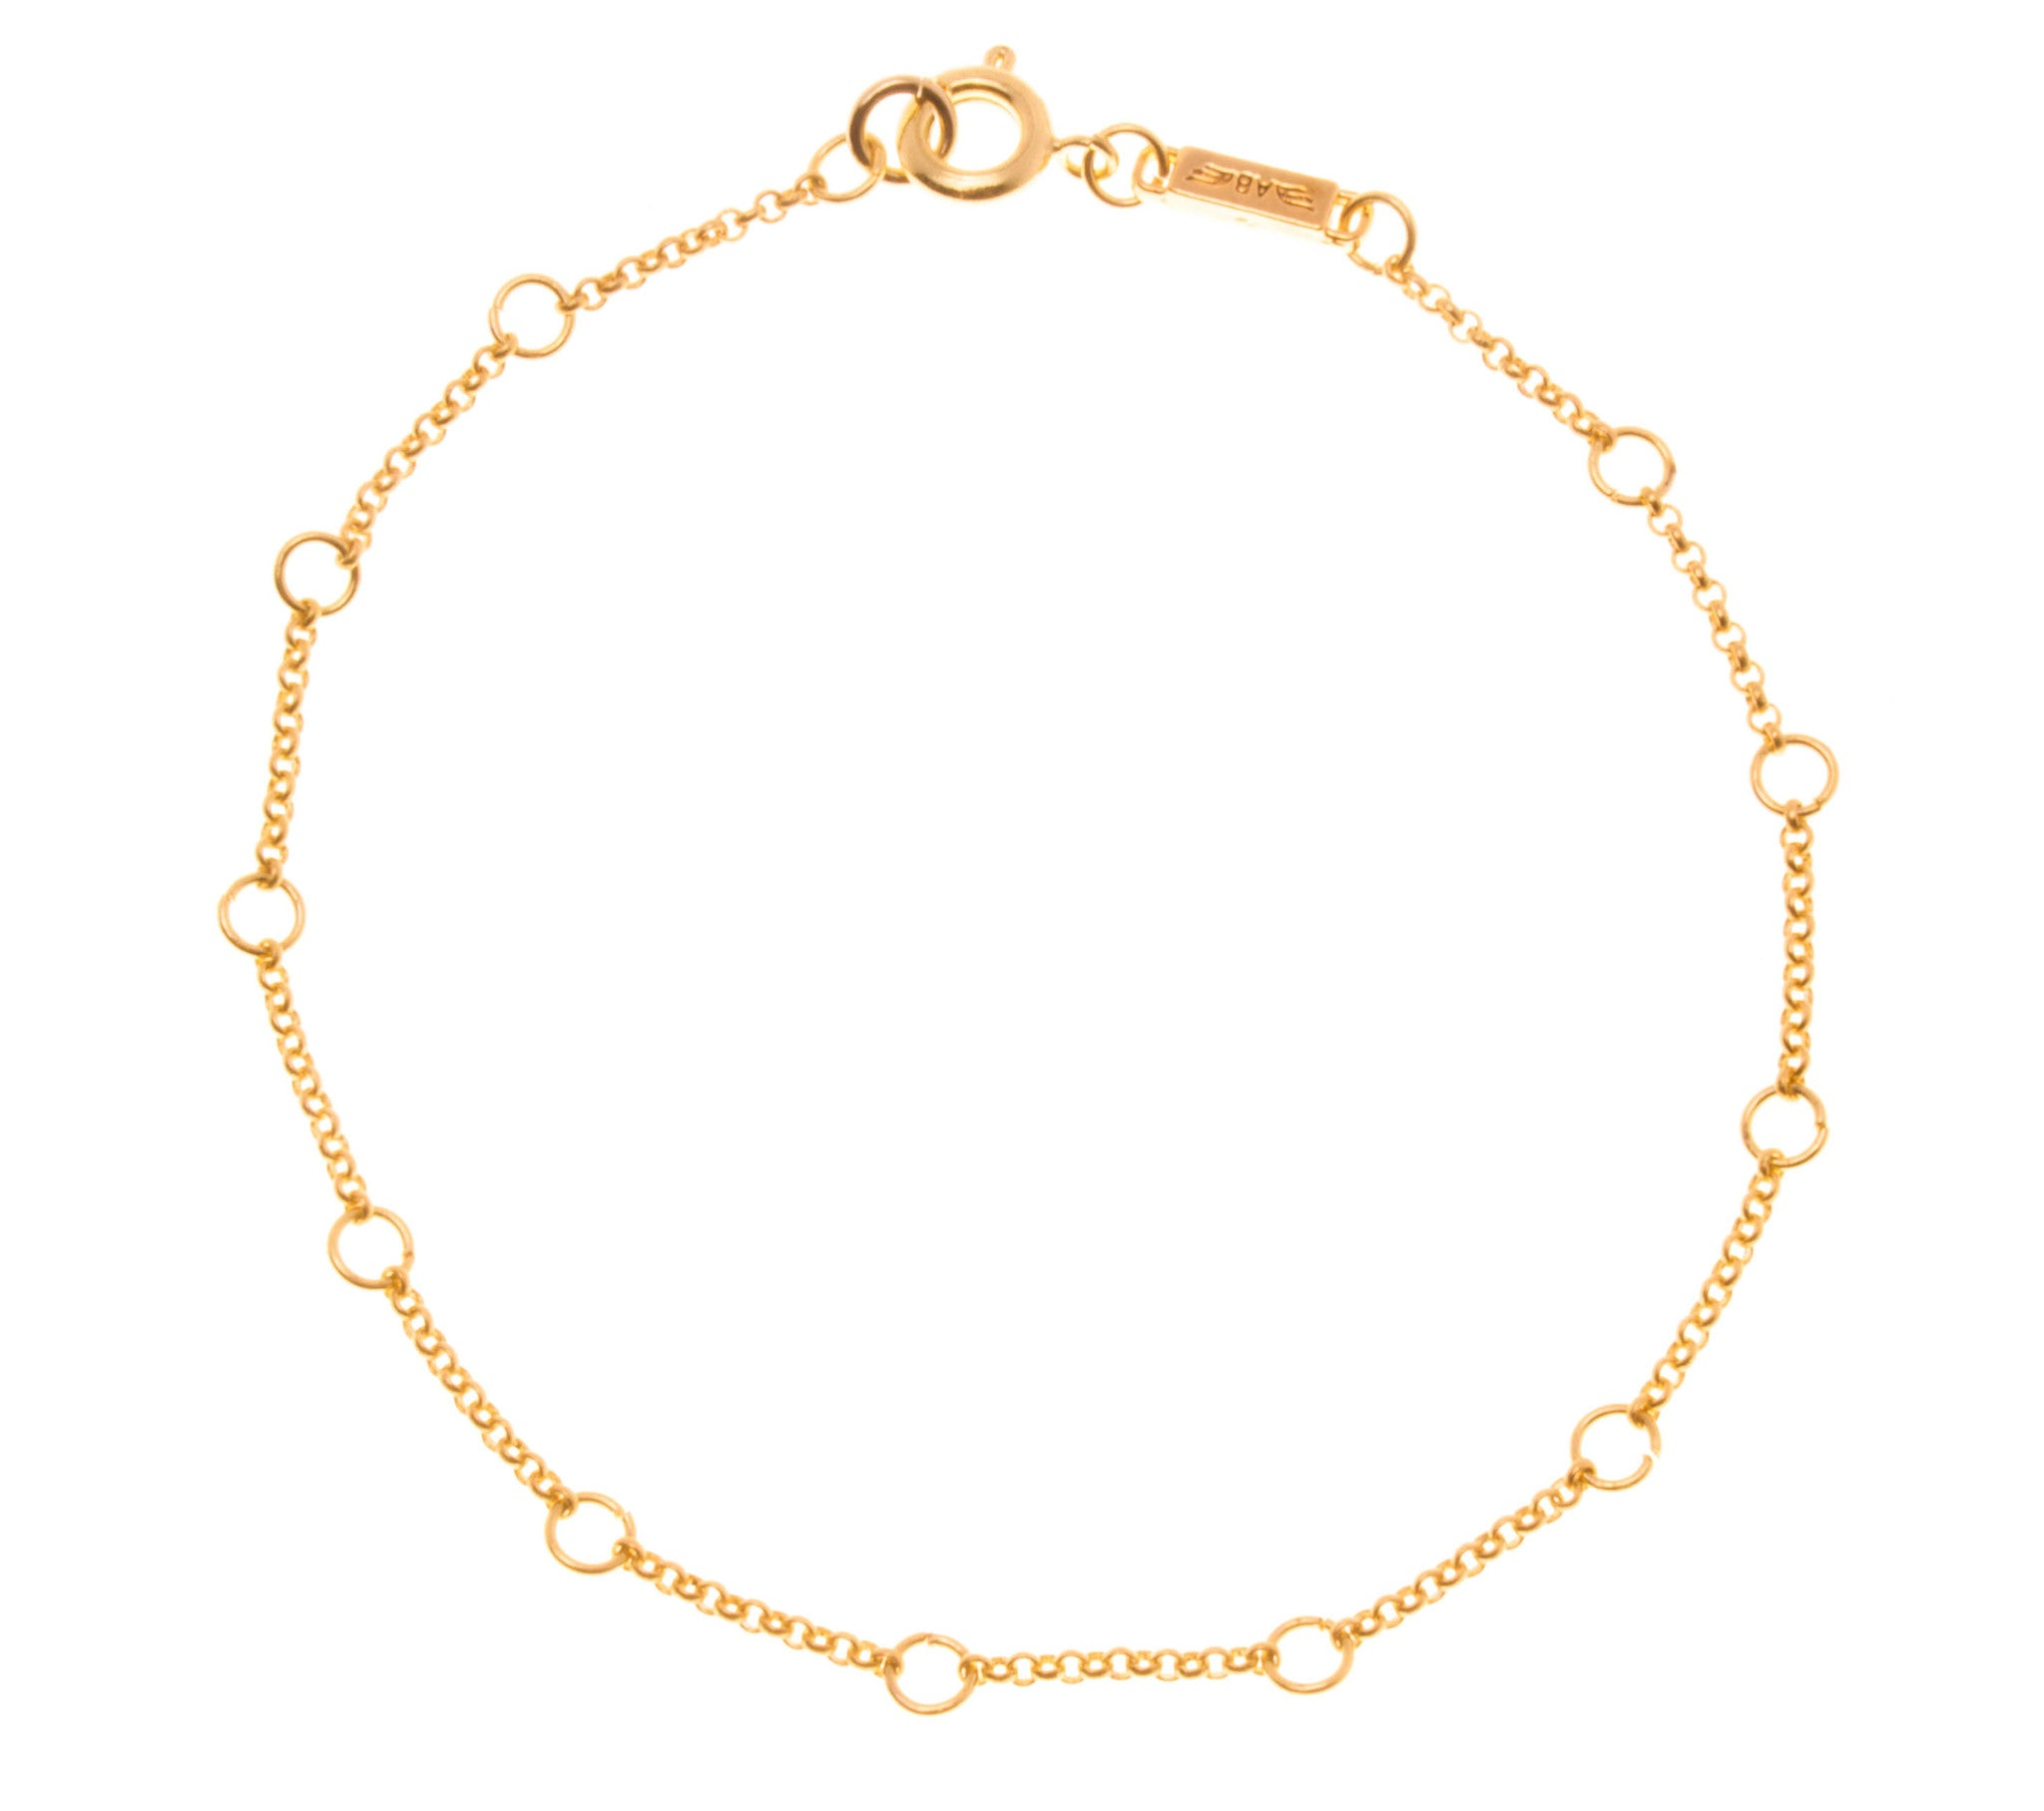 18K Gold Plated Charm Bracelet Ashley Brid